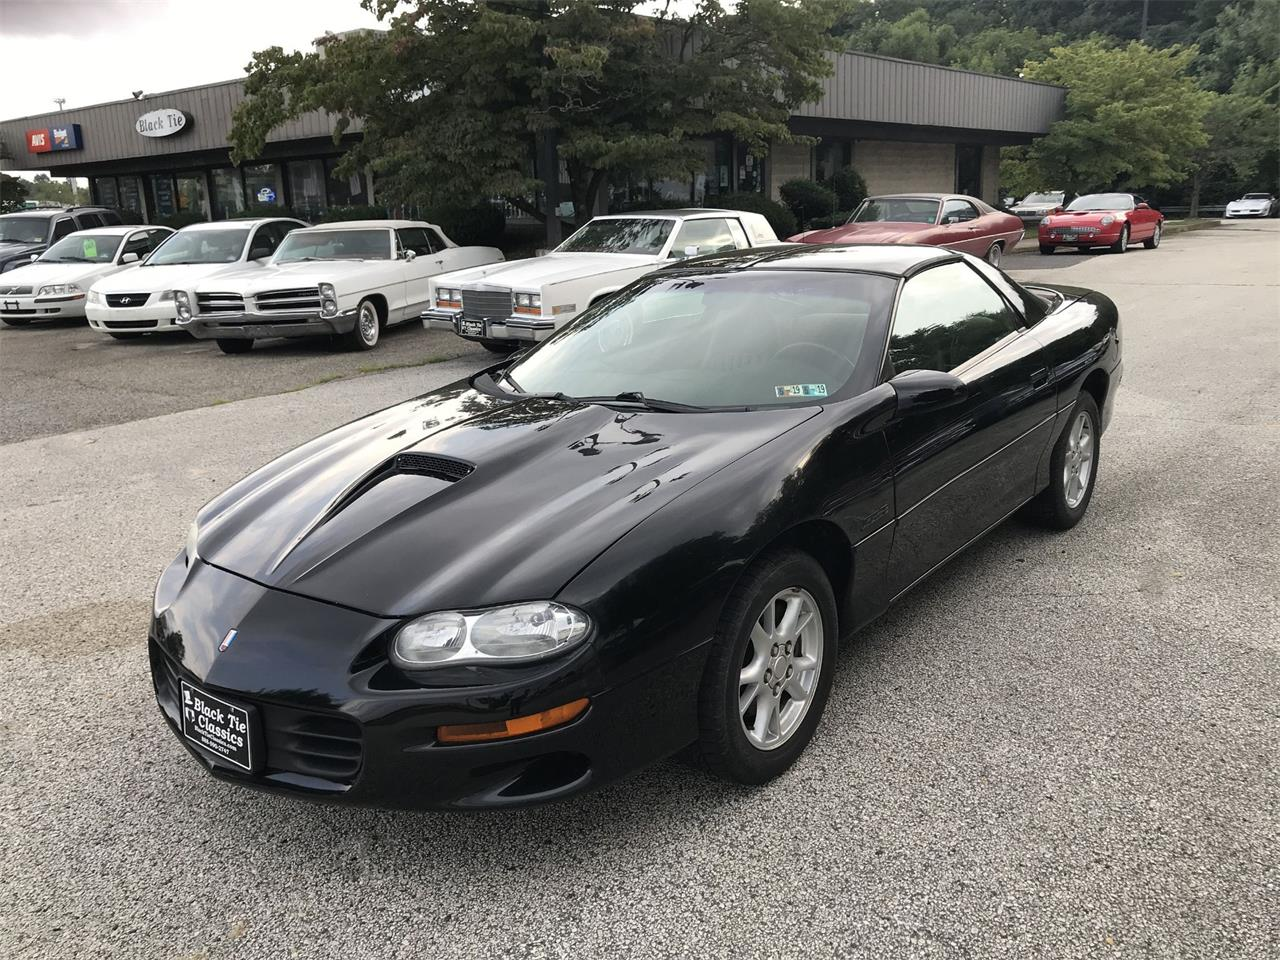 Large Picture of '00 Chevrolet Camaro Z28 located in New Jersey Offered by Black Tie Classics - Q4MK